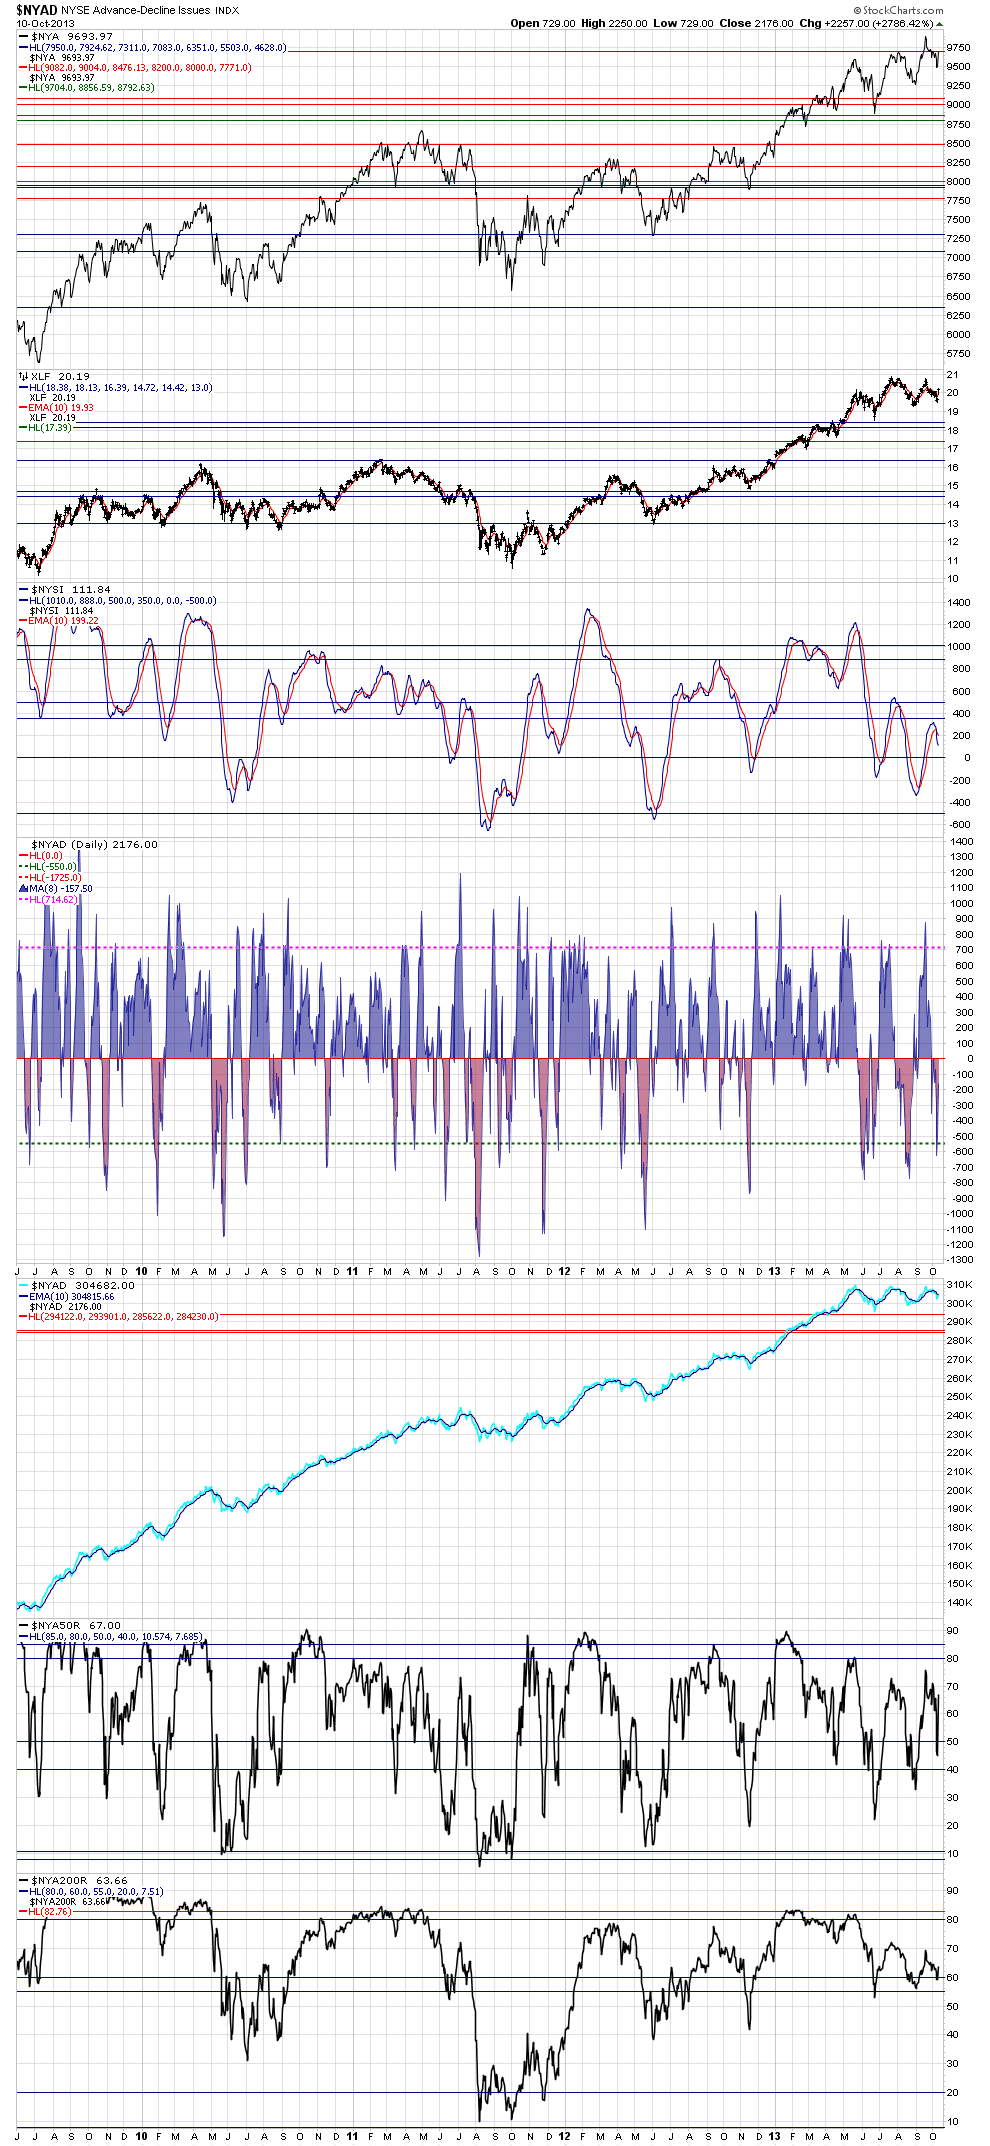 NYAD daily data smoothed with the 8-day sma - Oct10, 2013 -- the NYAD 8-day trend is marginally Below zero line, the buy zone location for the NYAD's 8-day SMA was visited ONLY on October 8 and 9th Before today's reversal.png